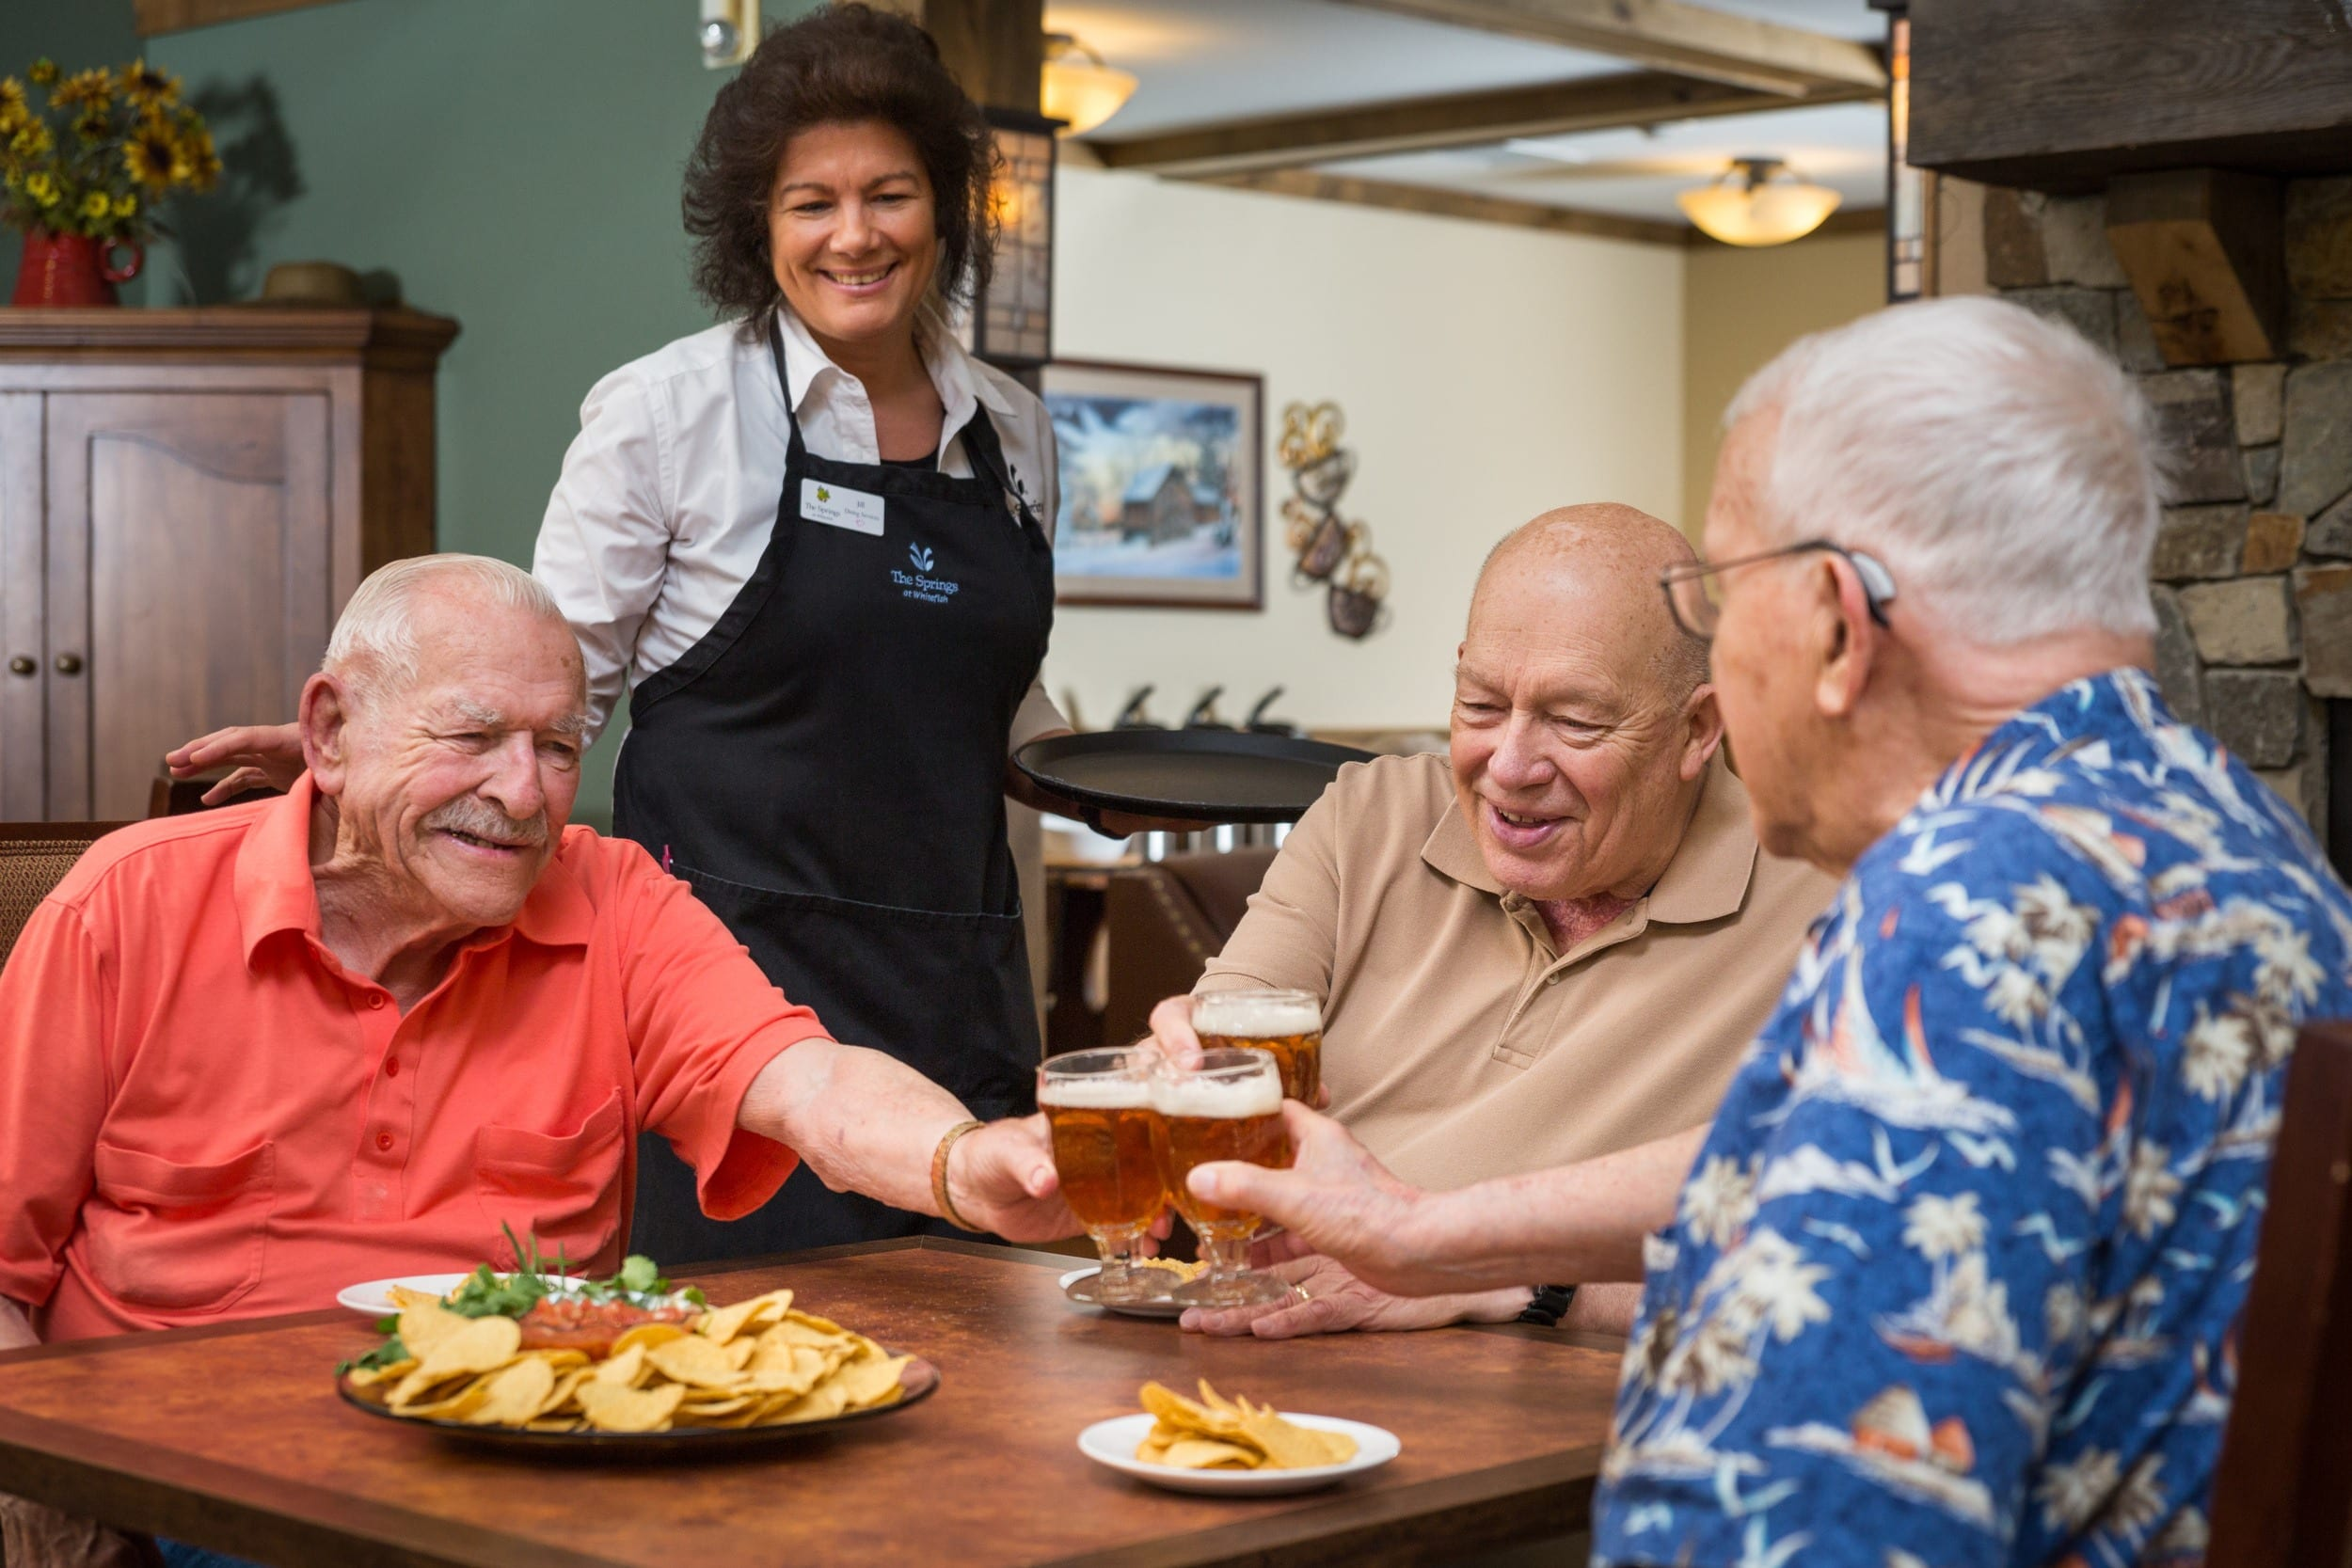 Residents enjoy a drink together at our senior living facility in Whitefish, MT